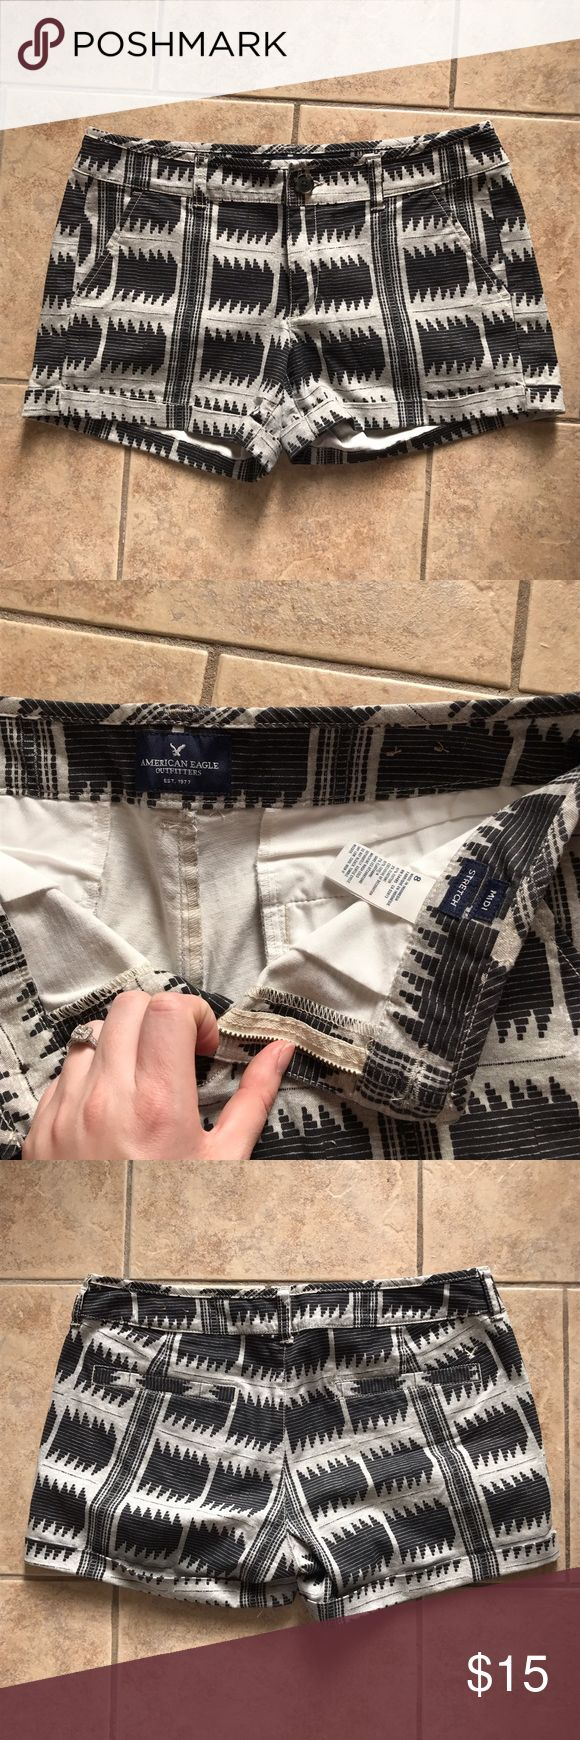 American Eagle Tribal Shorts These shorts are a midi length, and have a black and white tribal print on them. Material is nice and thick, in great condition! American Eagle Outfitters Shorts